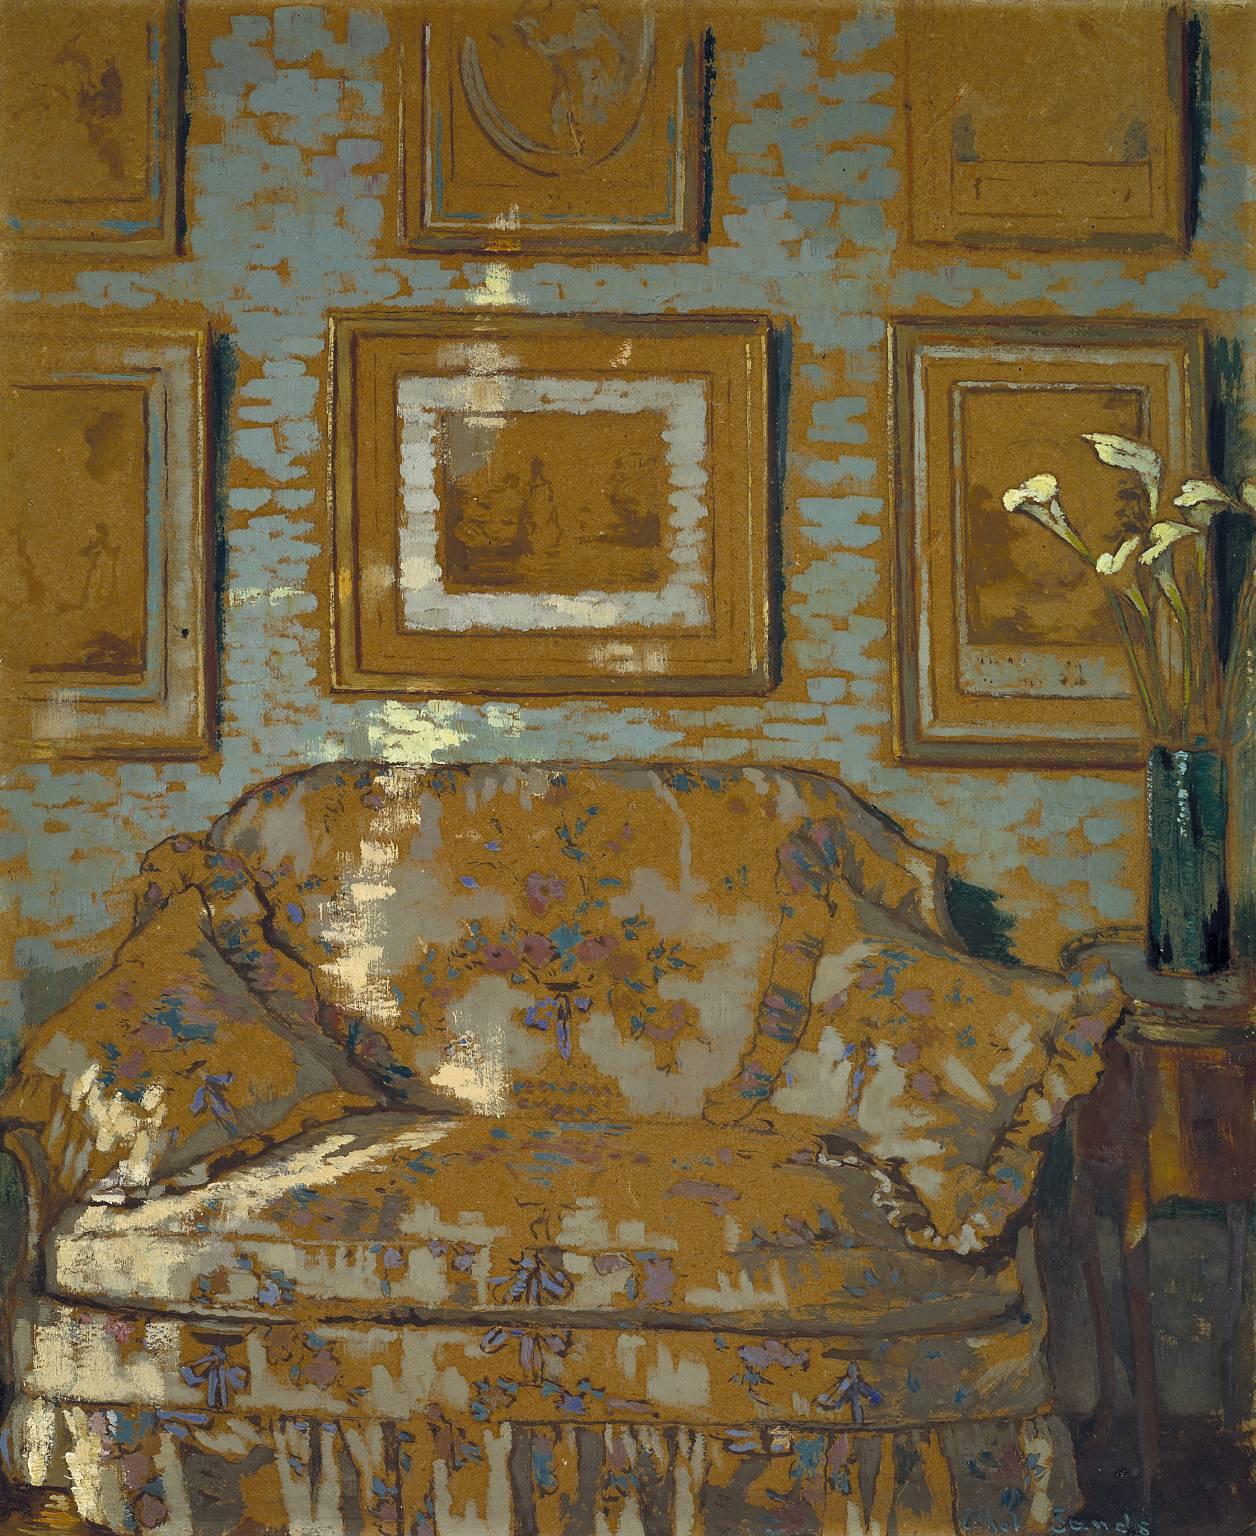 The Chintz Chair, by Ethel Sands